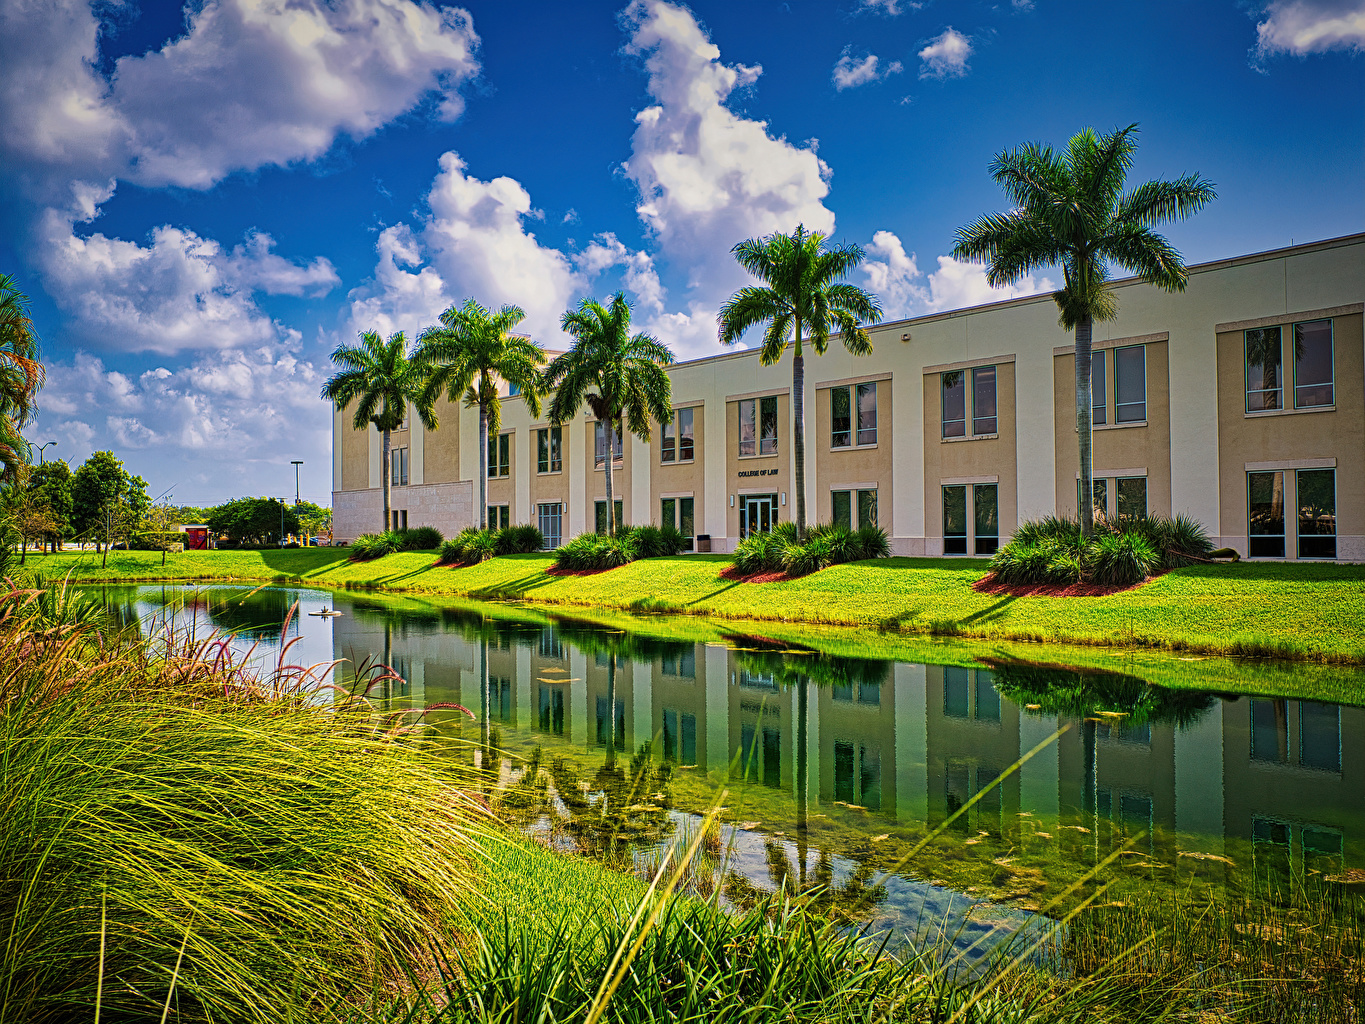 Images Miami Florida USA International University Canal Palms Houses Cities palm trees Building